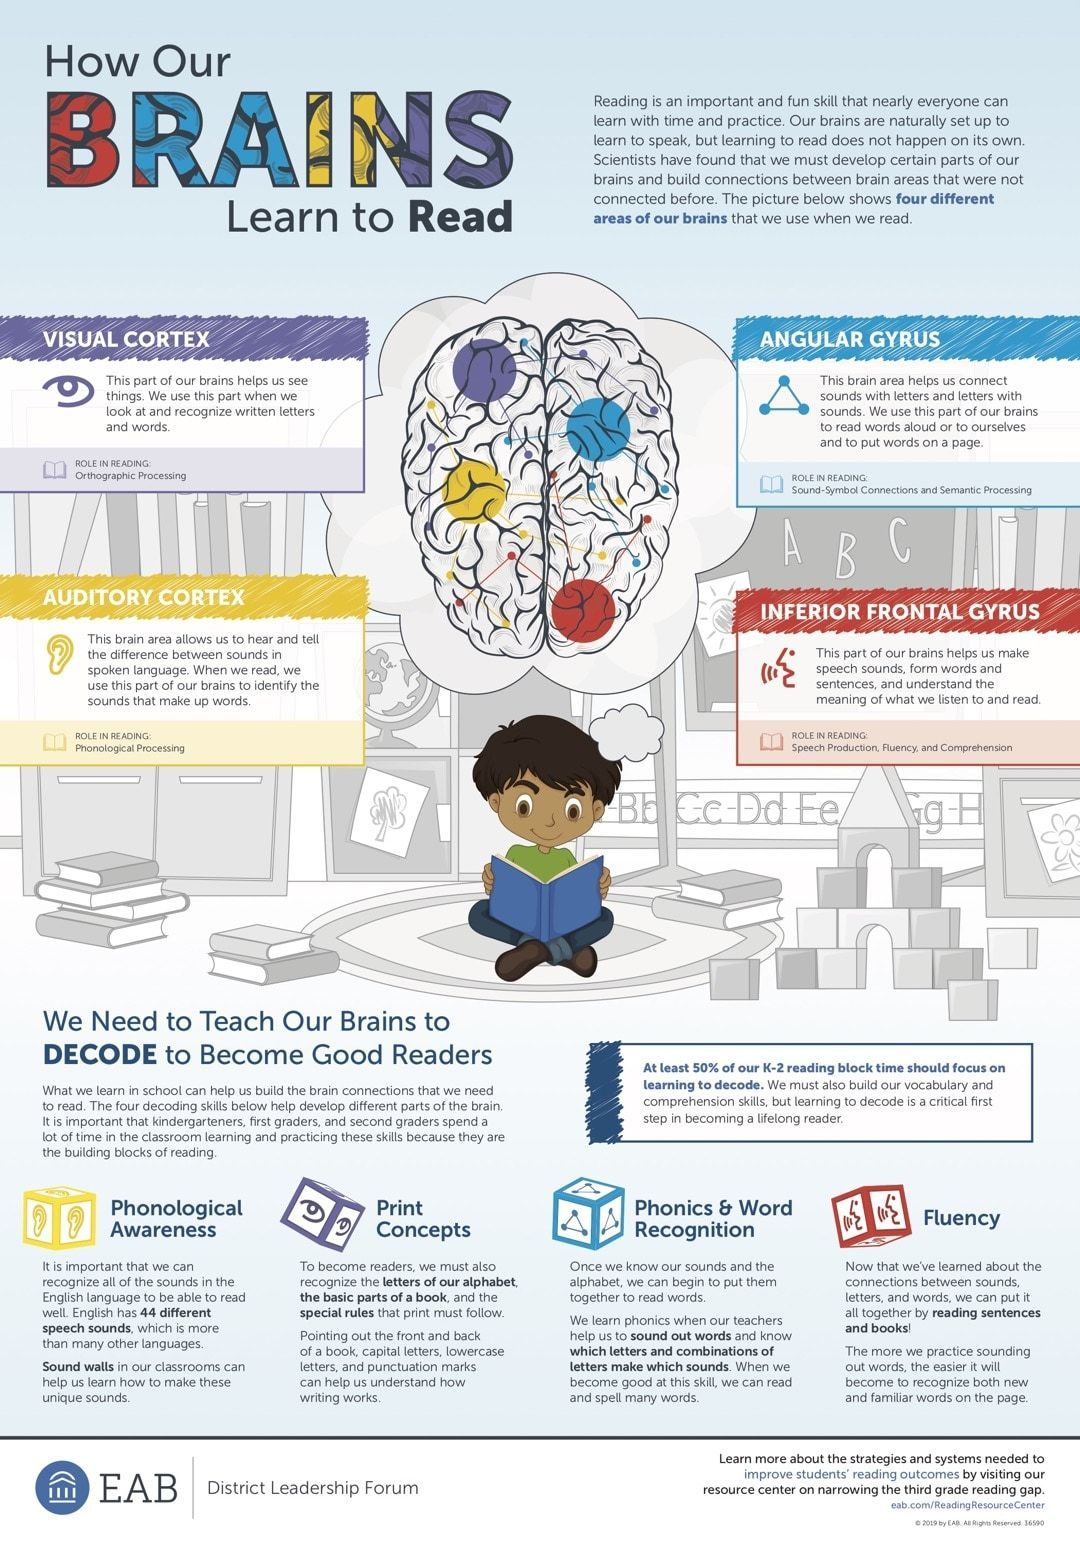 How To Help Our Brains Learn To Read Infographic Brain Learning Learn To Read Reading Resources